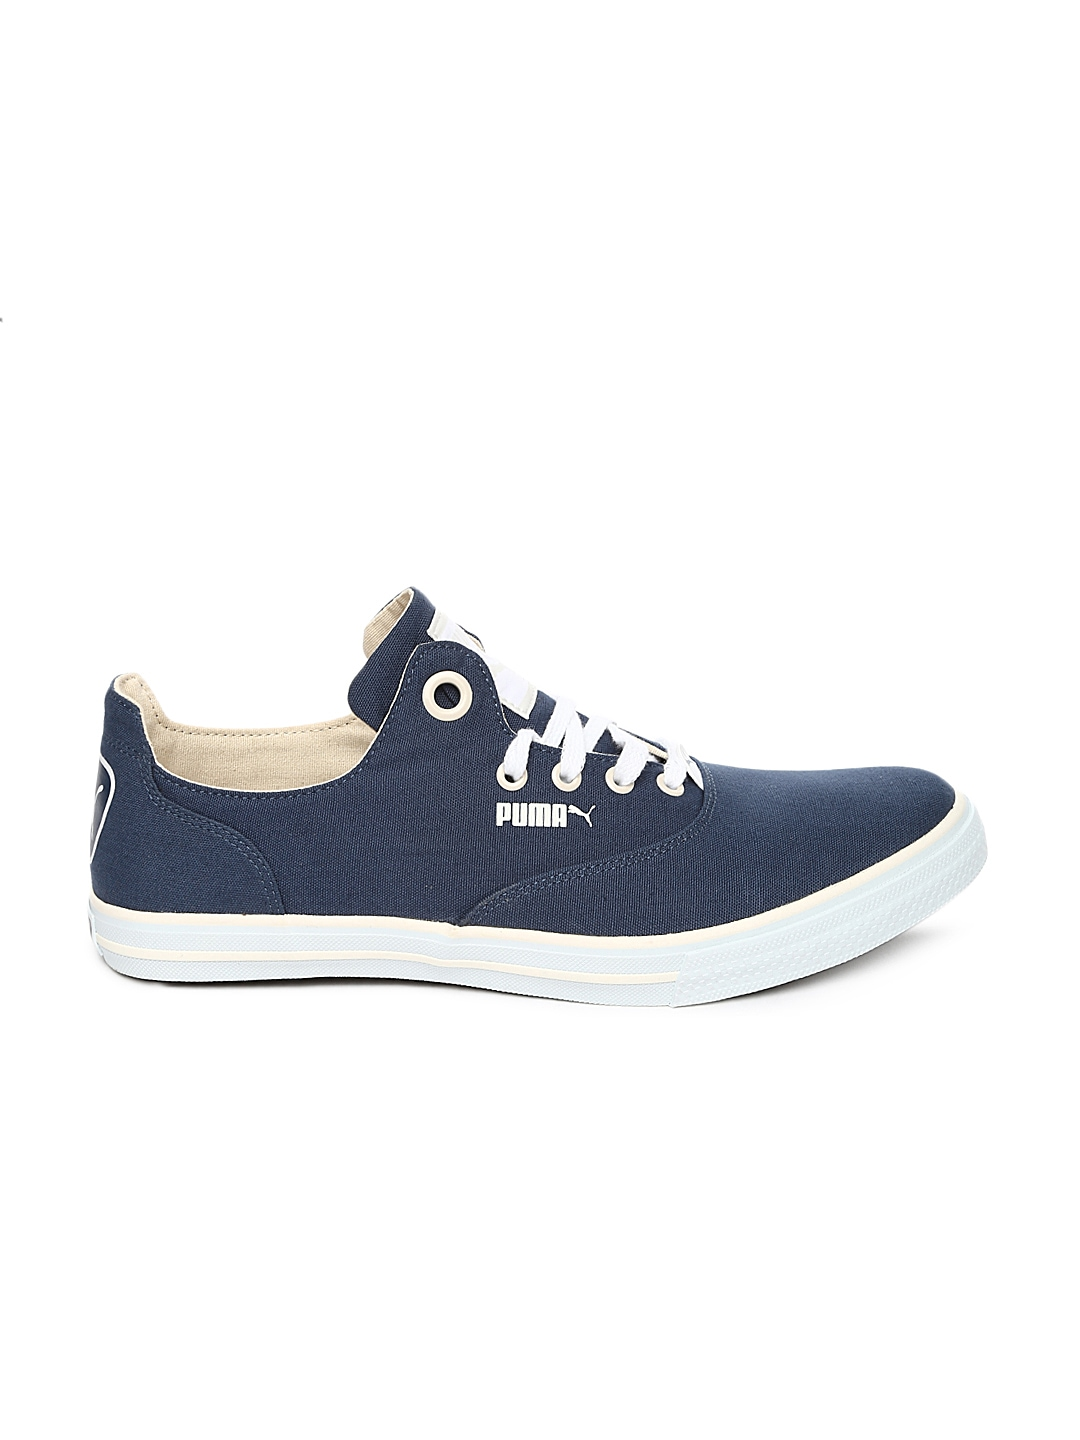 myntra blue limnos cat 2 dp casual shoes 716062